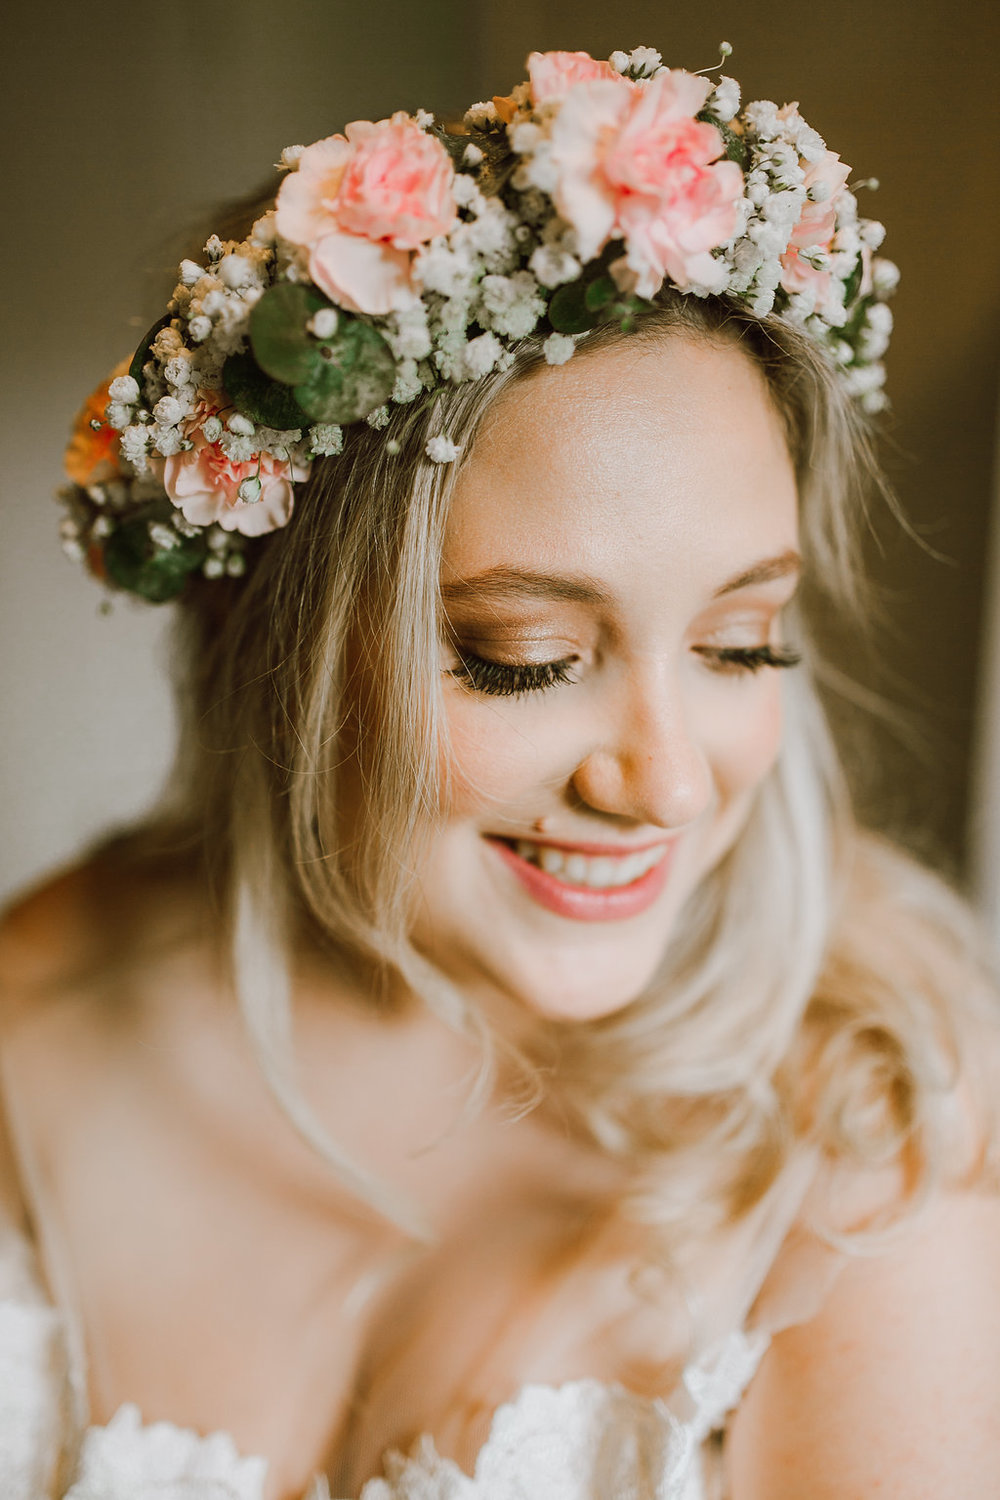 Baby's Breath Floral Crown - Whimsical Wedding Flowers